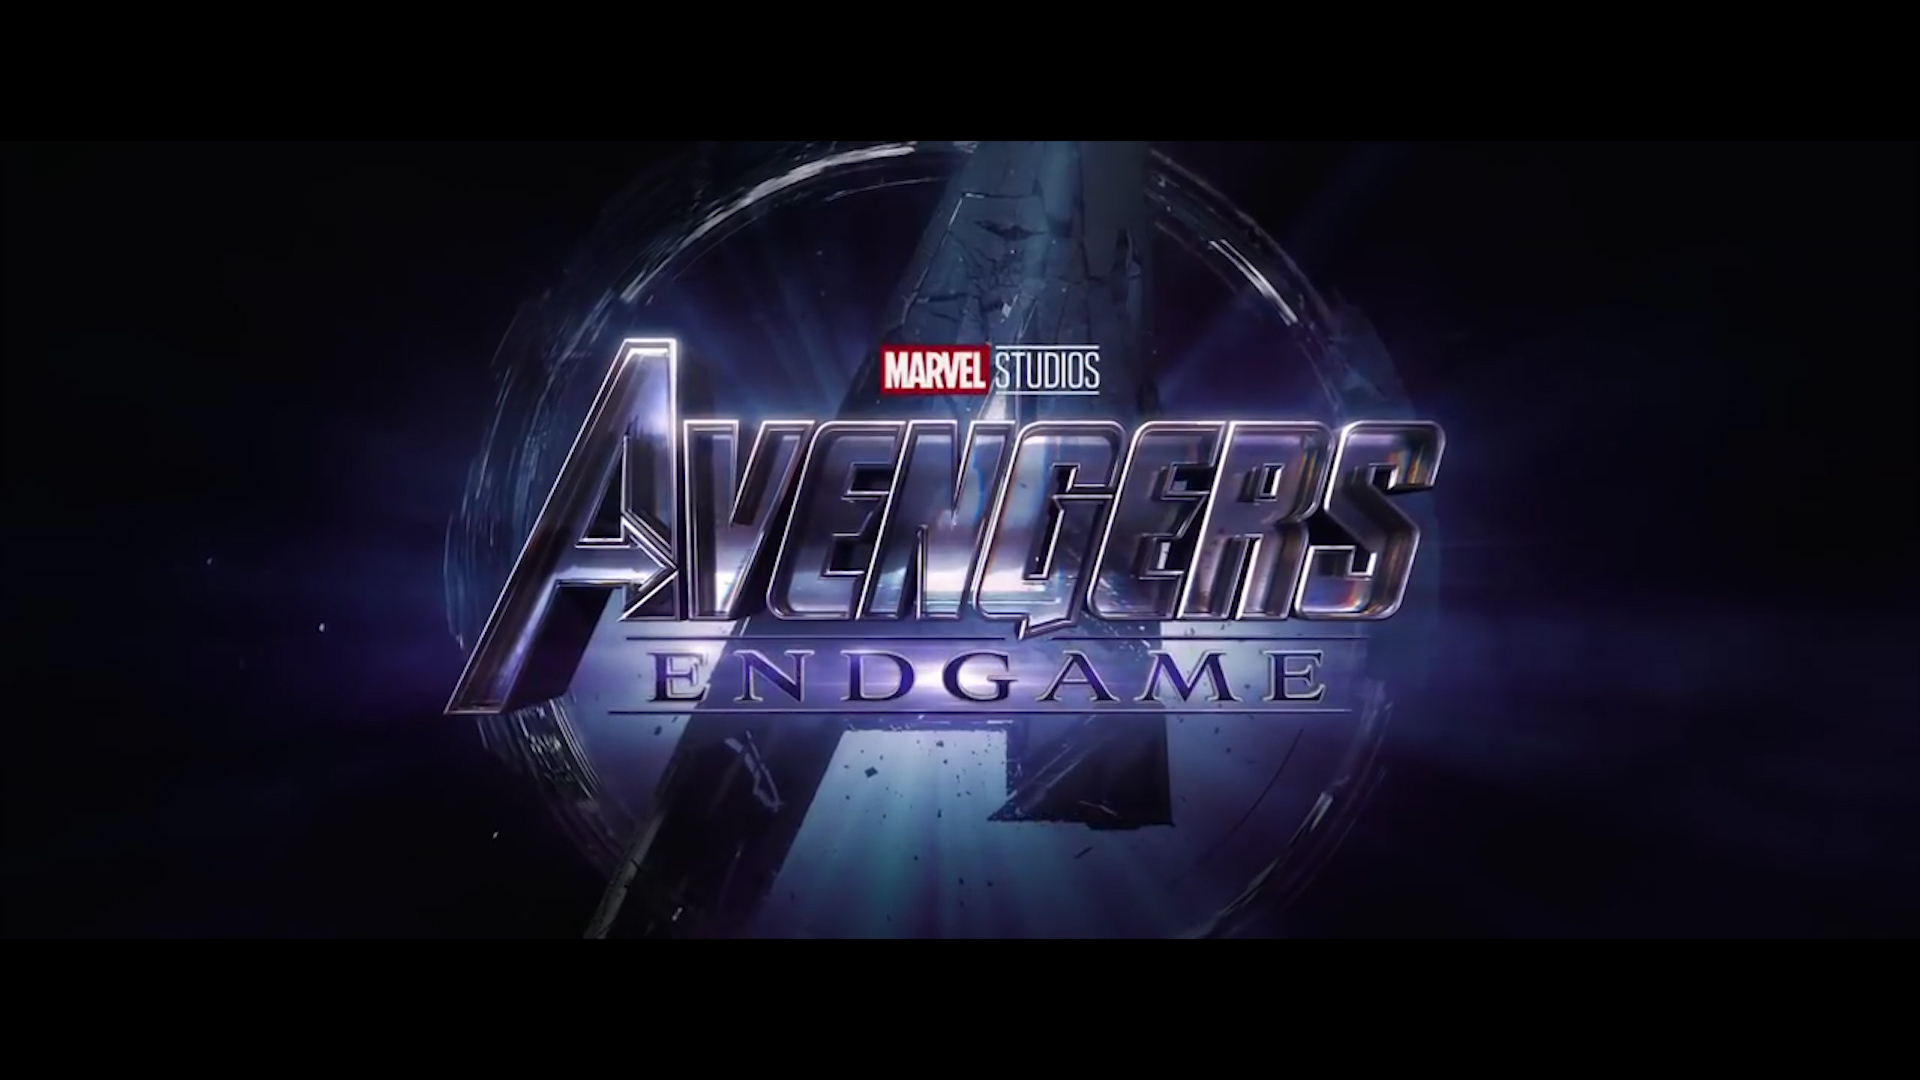 Avengers: Endgame New Teaser - It's the Fight of Their Lives